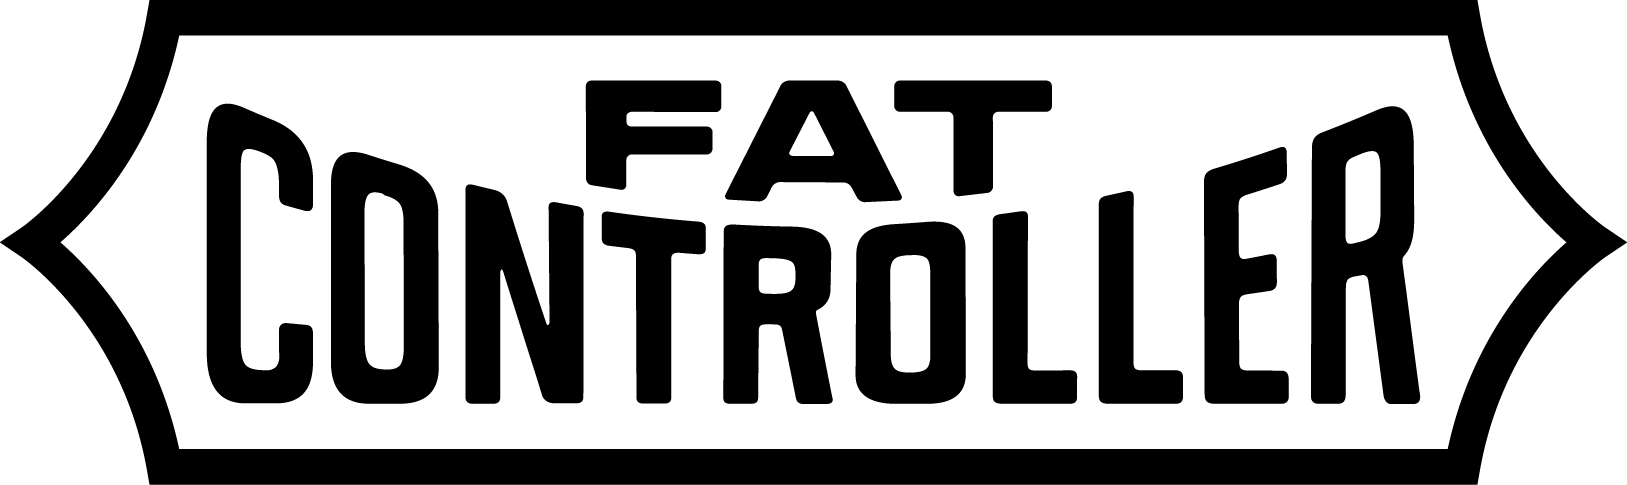 FAT_Logo copy.png